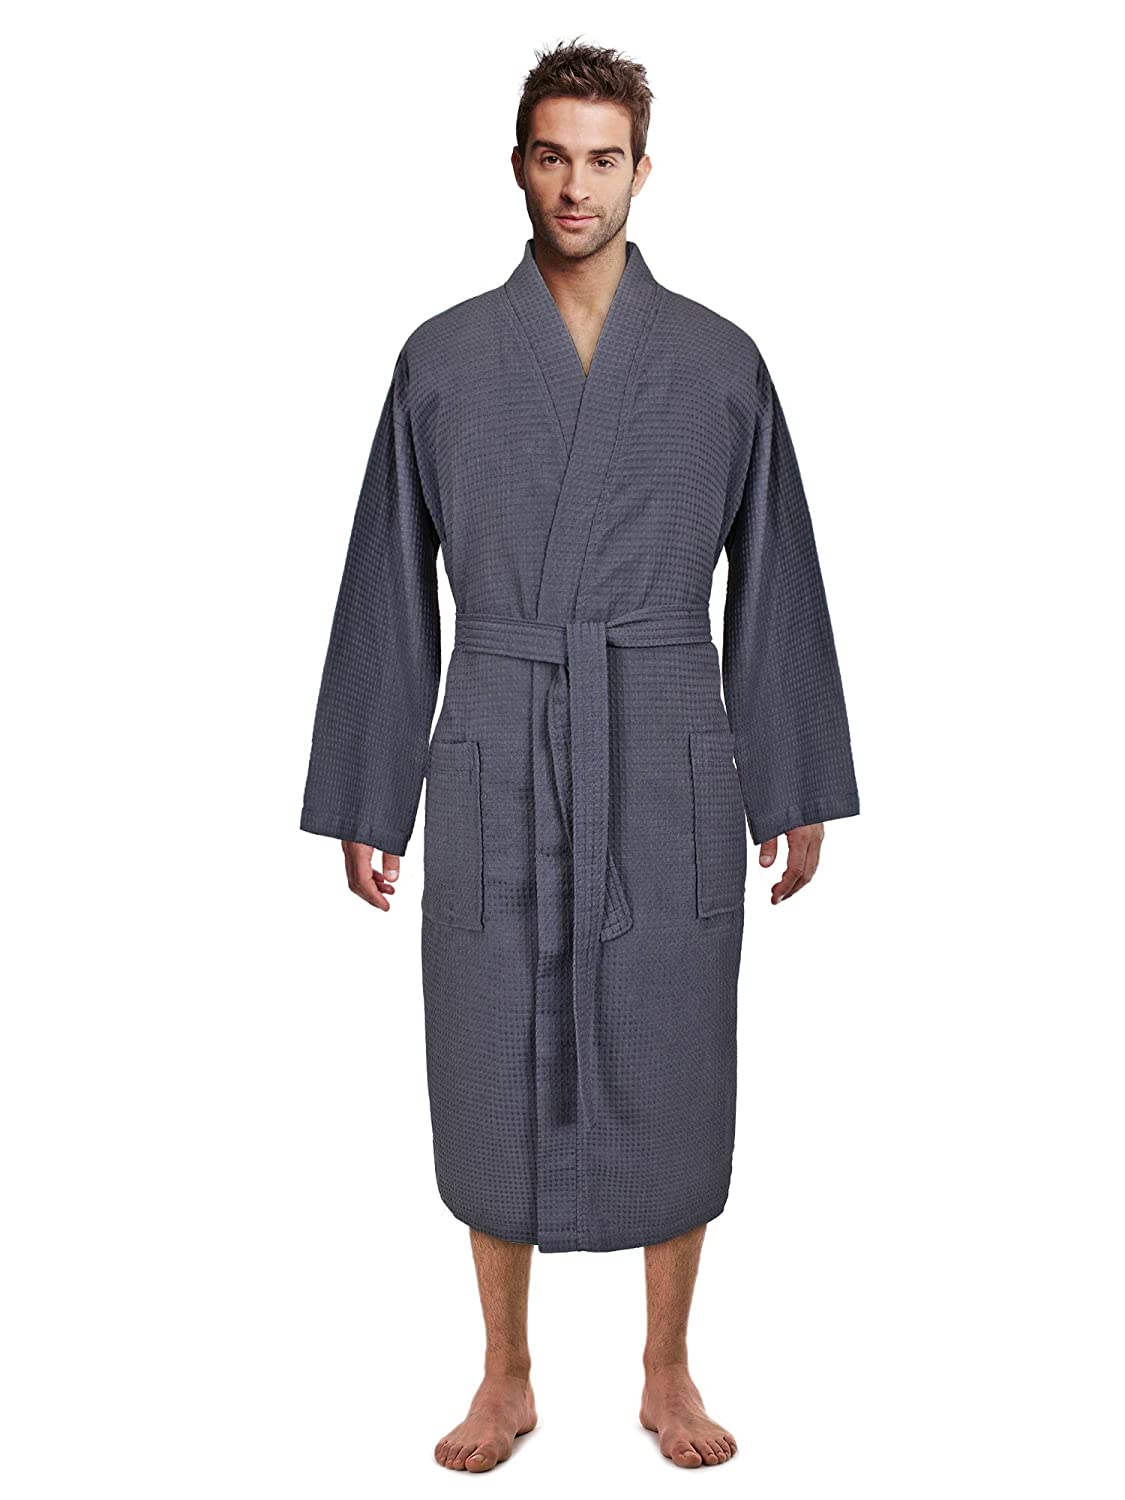 Premium Turkish Cotton Waffle Weave Lightweight Kimono Spa Bathrobe for Men Turkish Linen